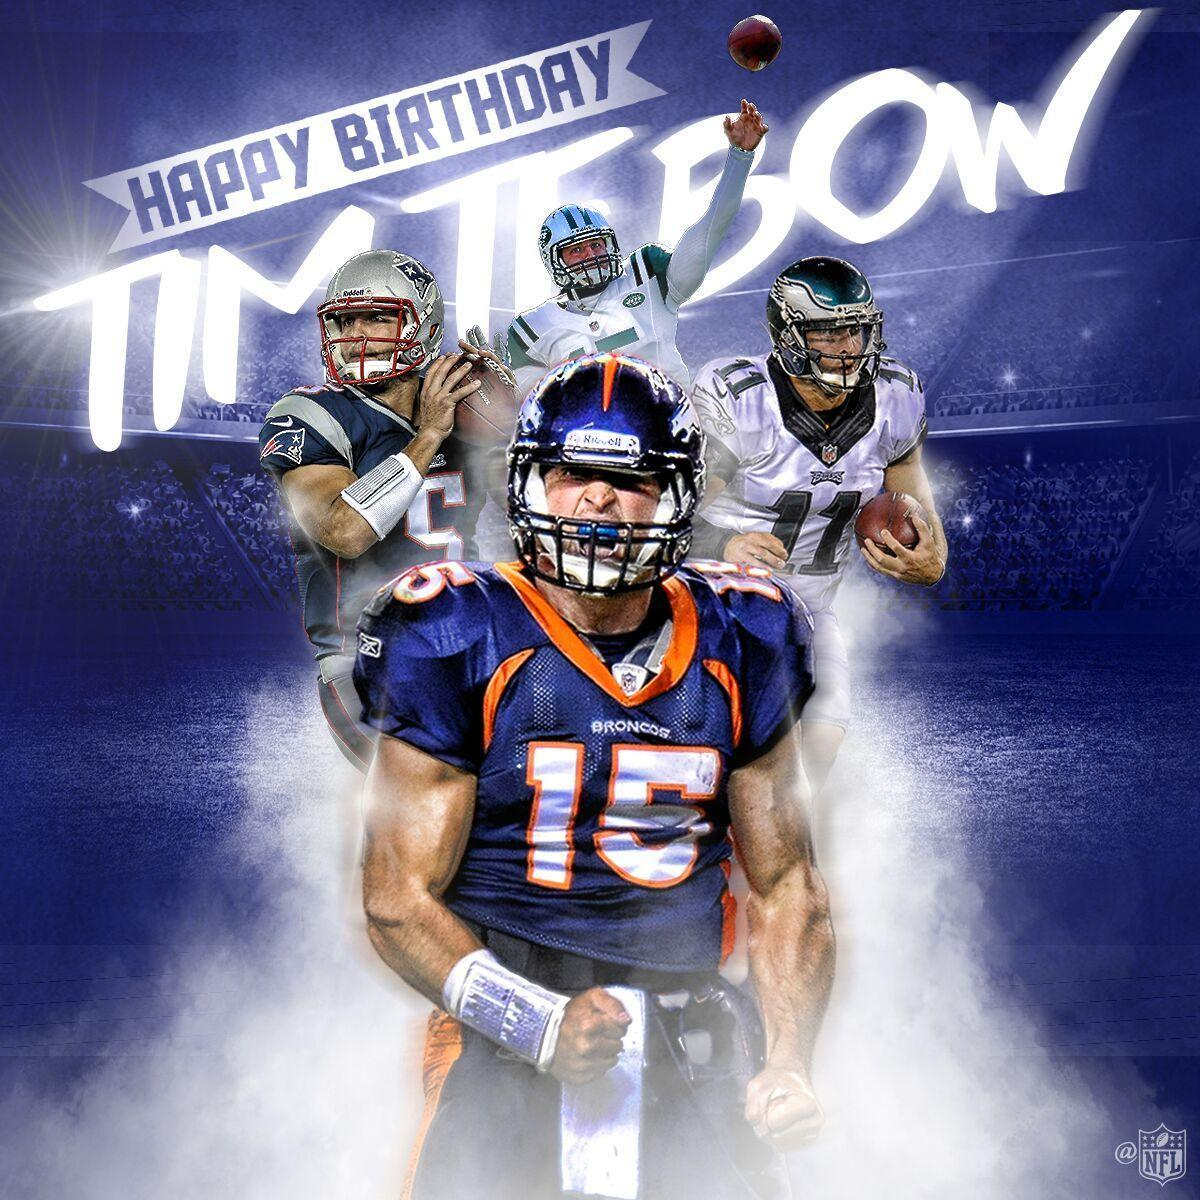 Join us in wishing @TimTebow a HAPPY BIRTHDAY! �� https://t.co/iLYSjhfGp0